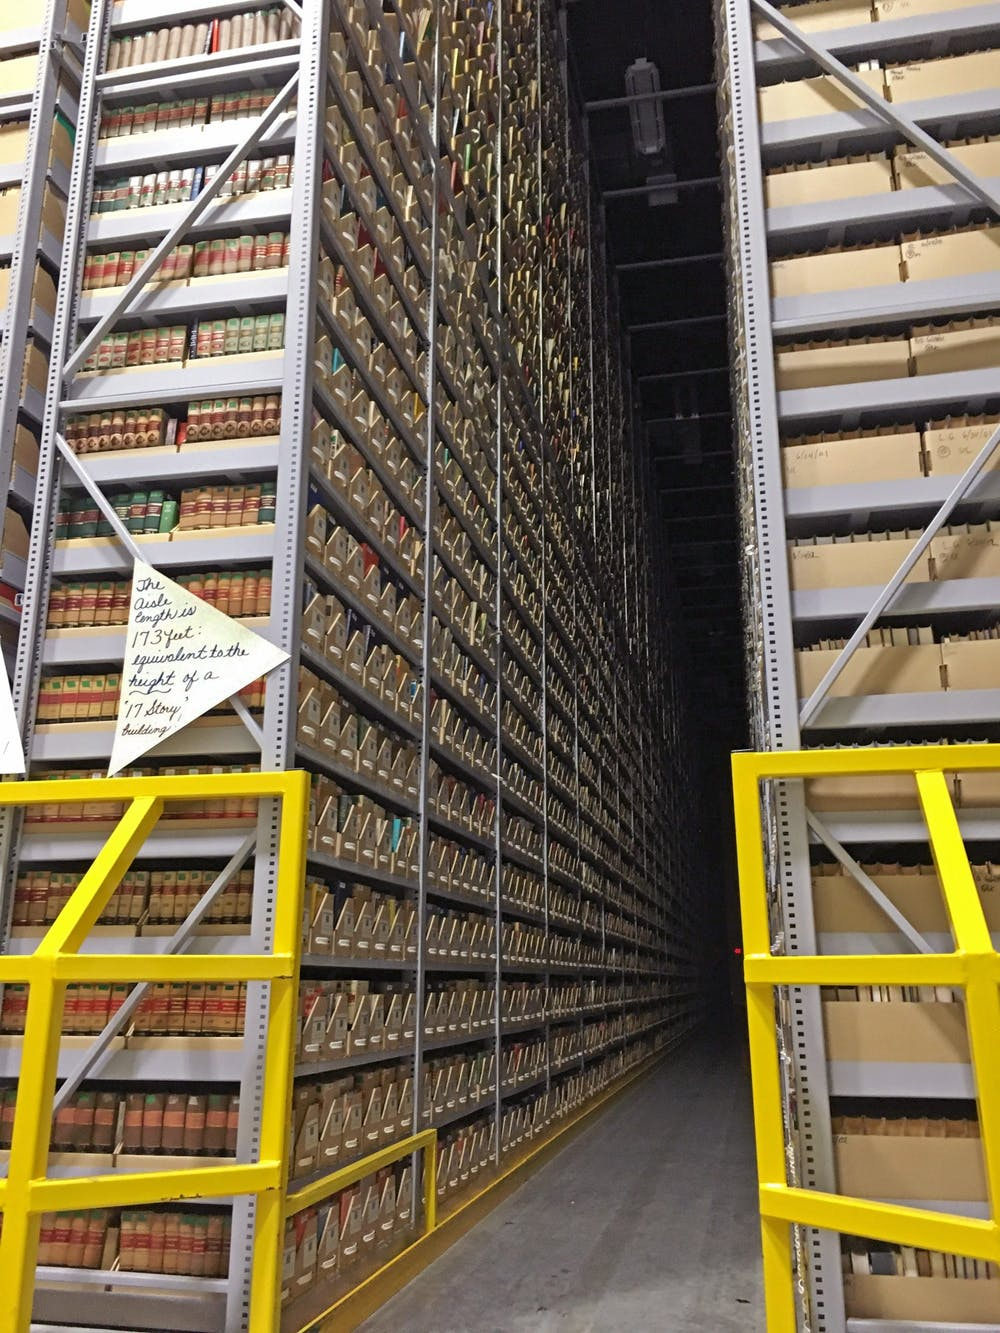 <p>Miami sends rare books to be housed in a depository for safe keeping until they are requested again for use. </p>